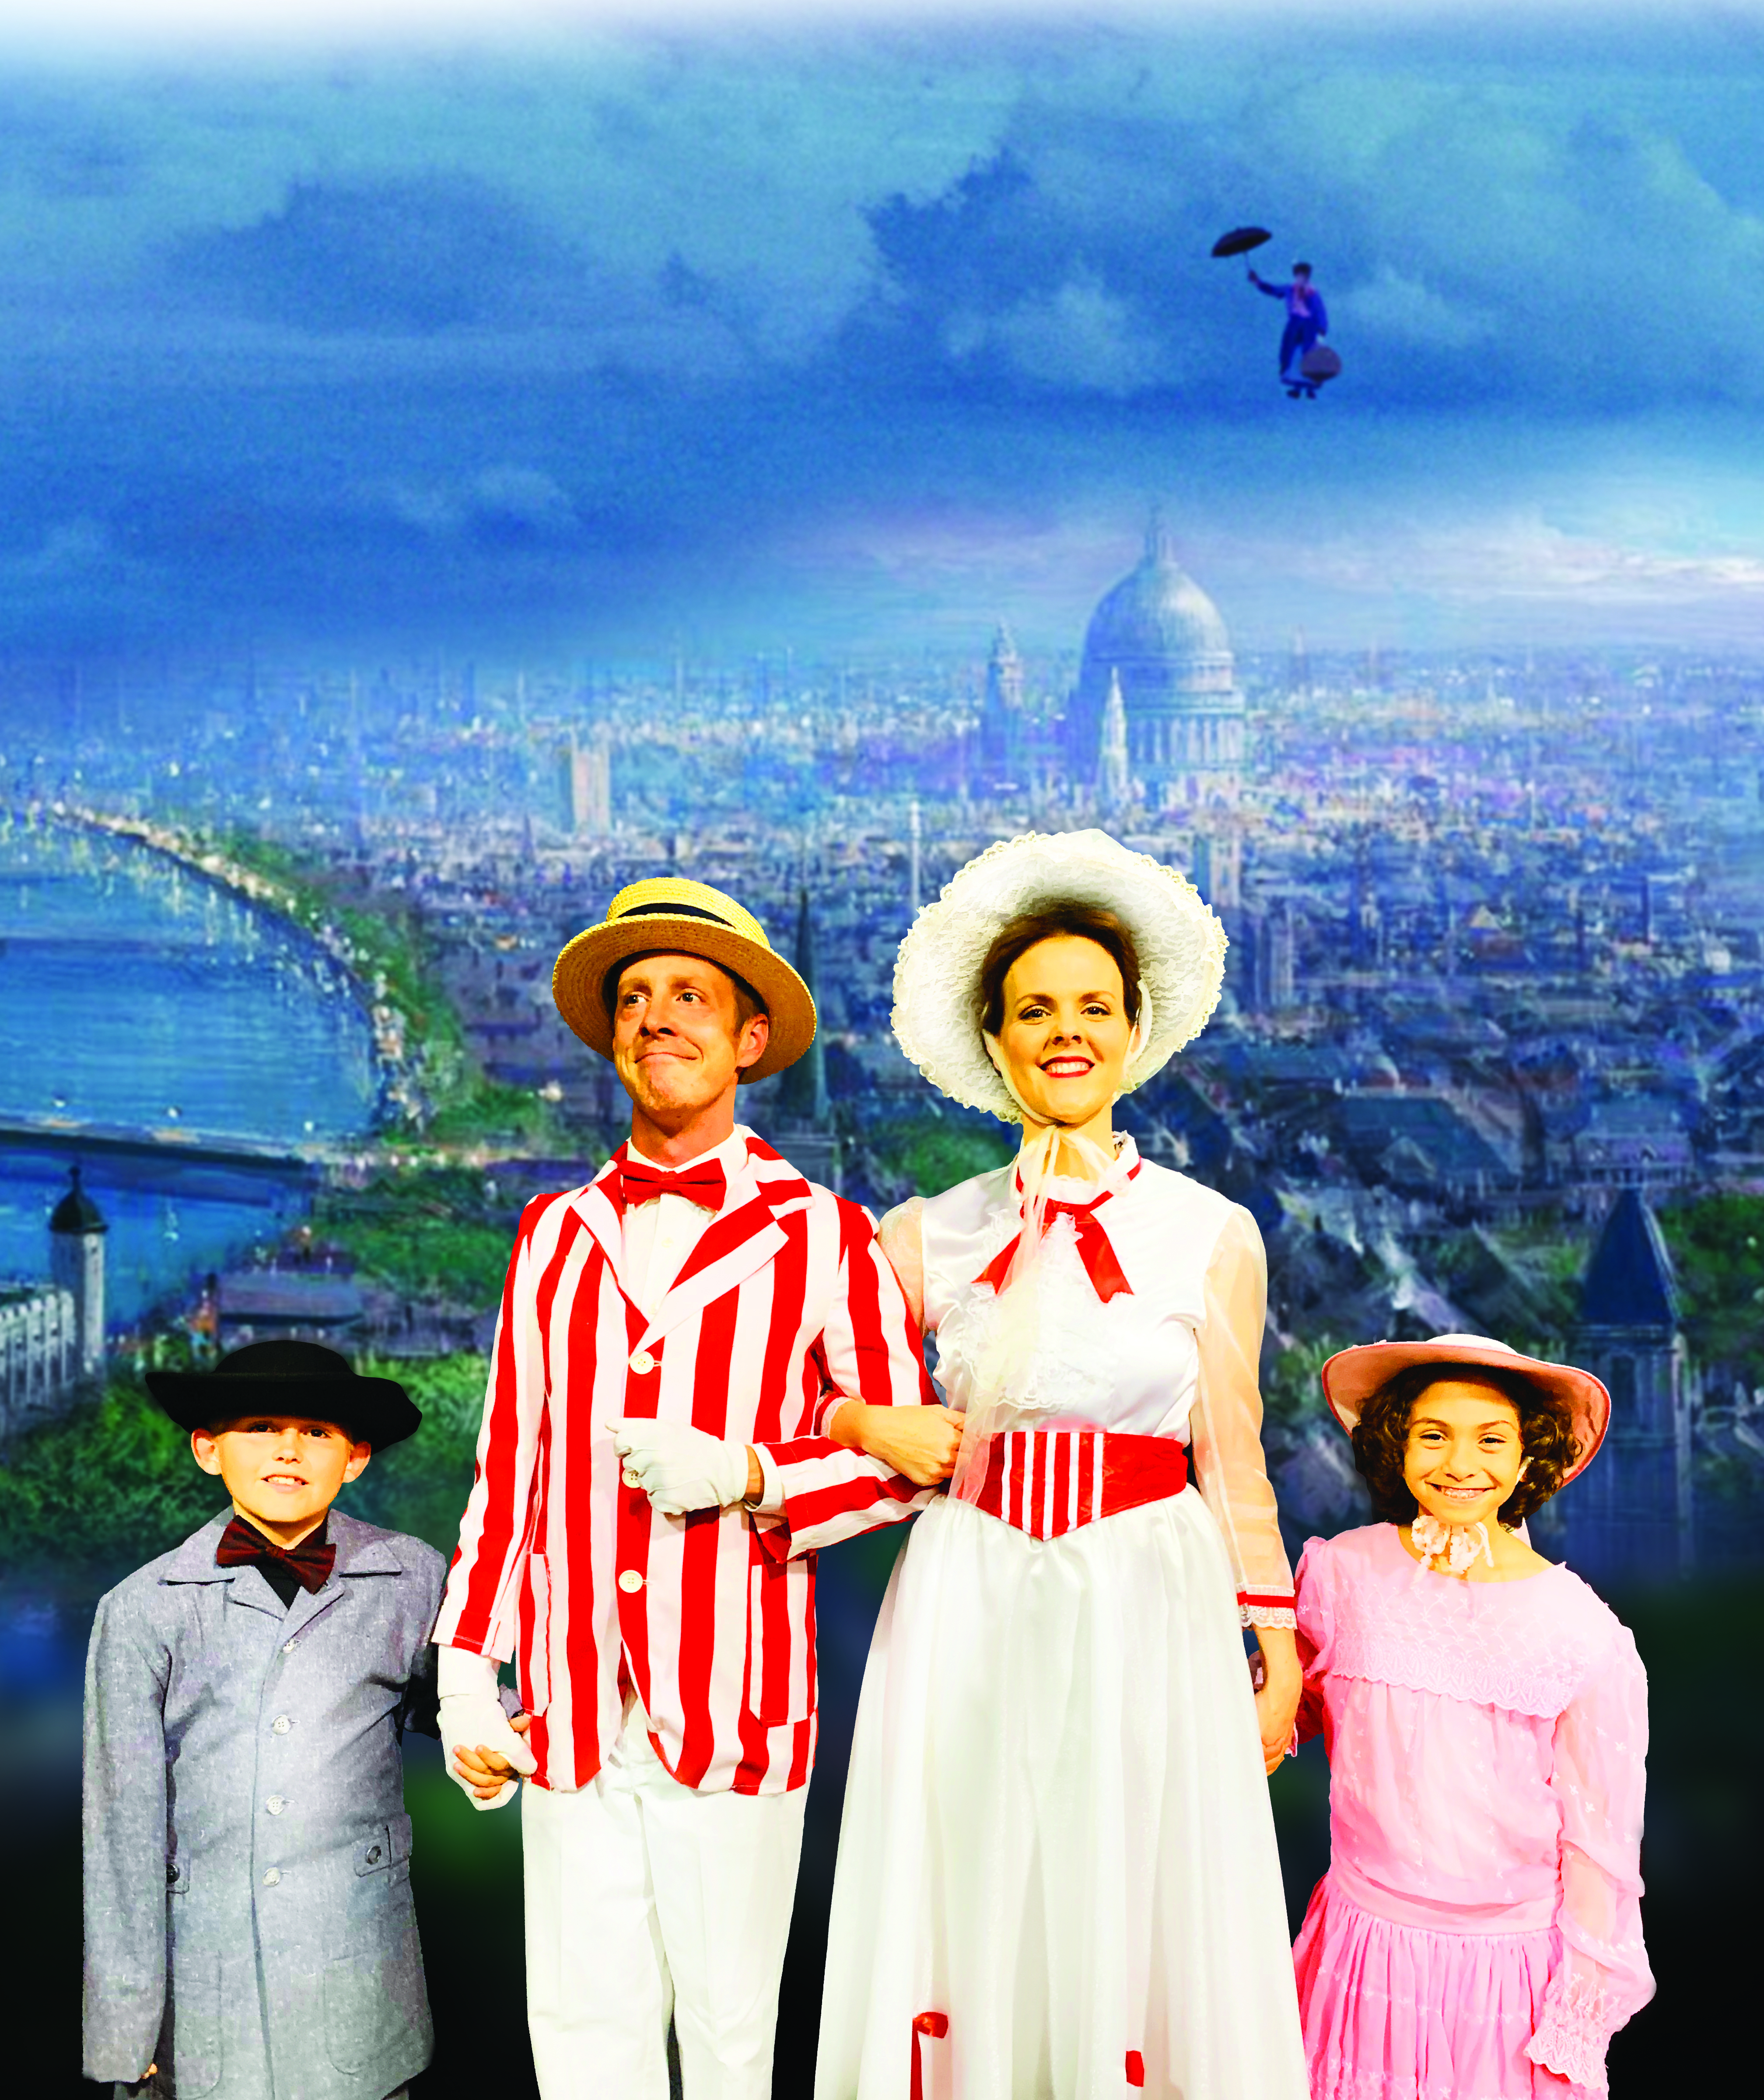 Desert Theatreworks presents Mary Poppins at at the Indio Performing Arts Center